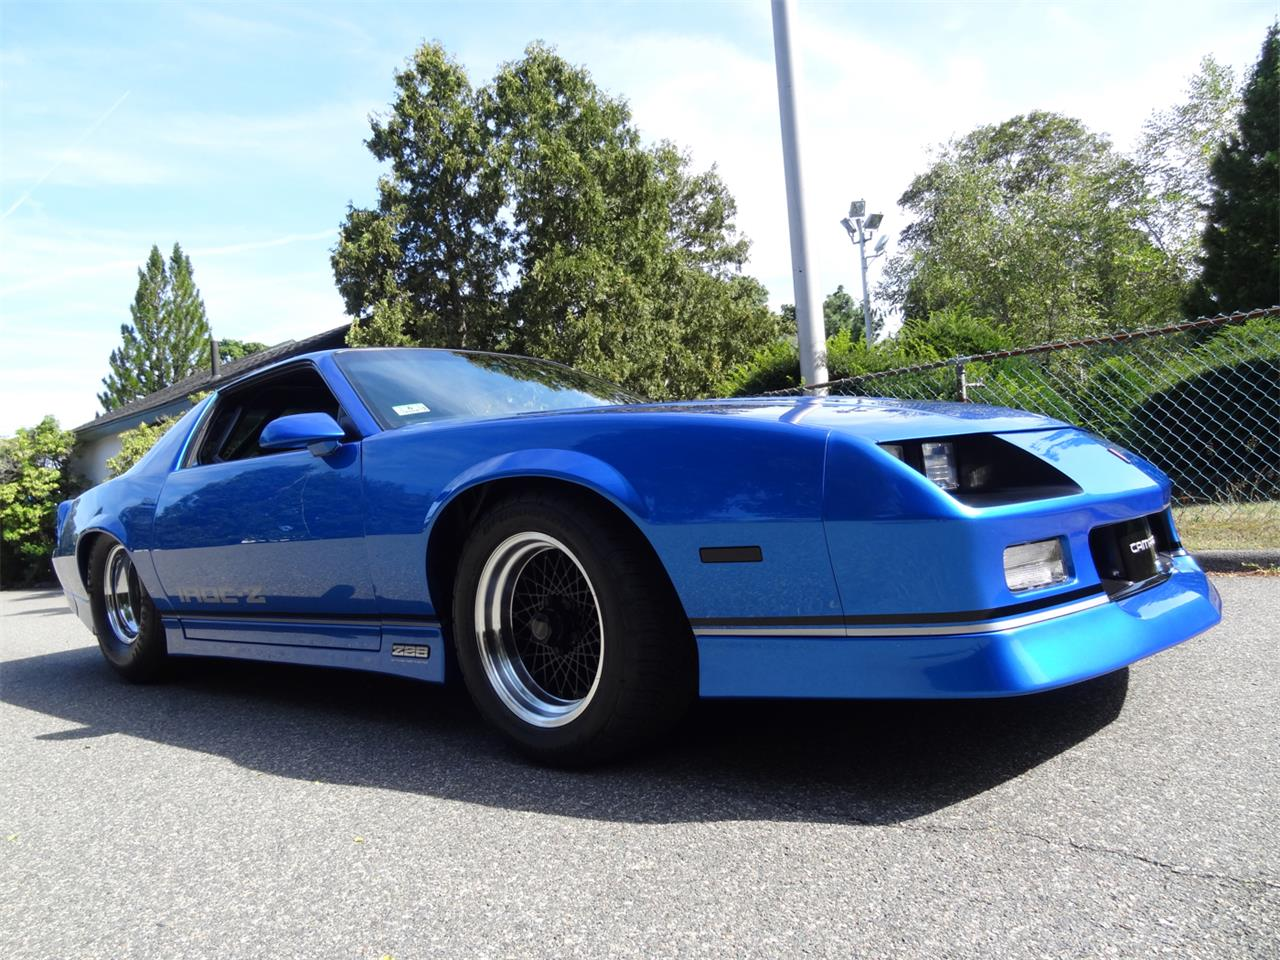 Large Picture of '83 Camaro IROC Z28 located in Massachusetts Offered by a Private Seller - QUEA